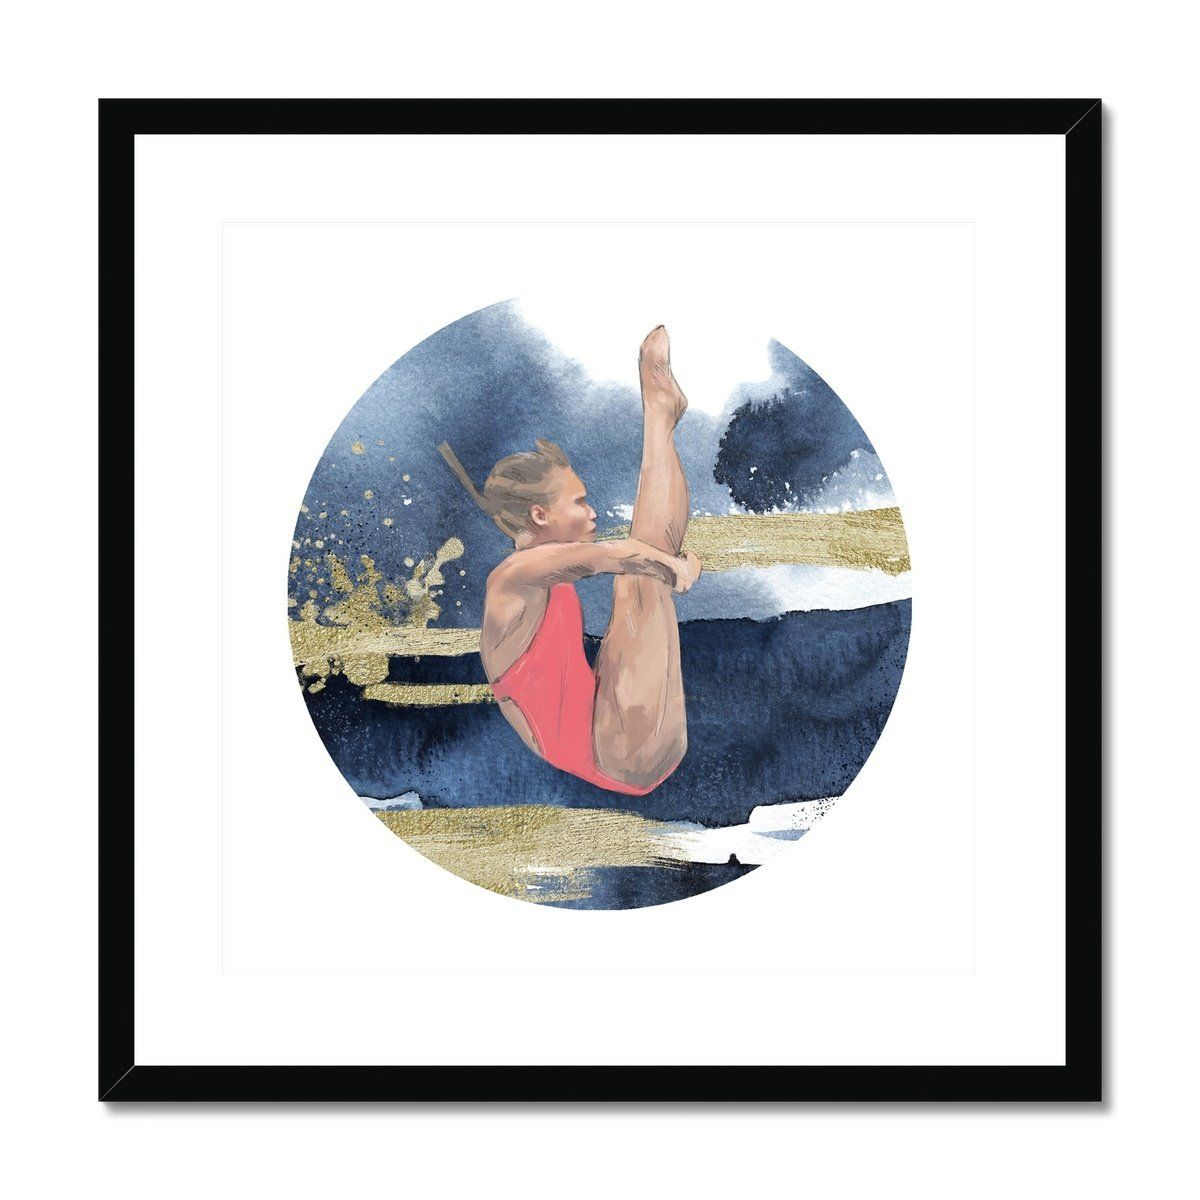 DIVE GIRL 'UP', CIRCLE ON SQUARE Framed & Mounted Print